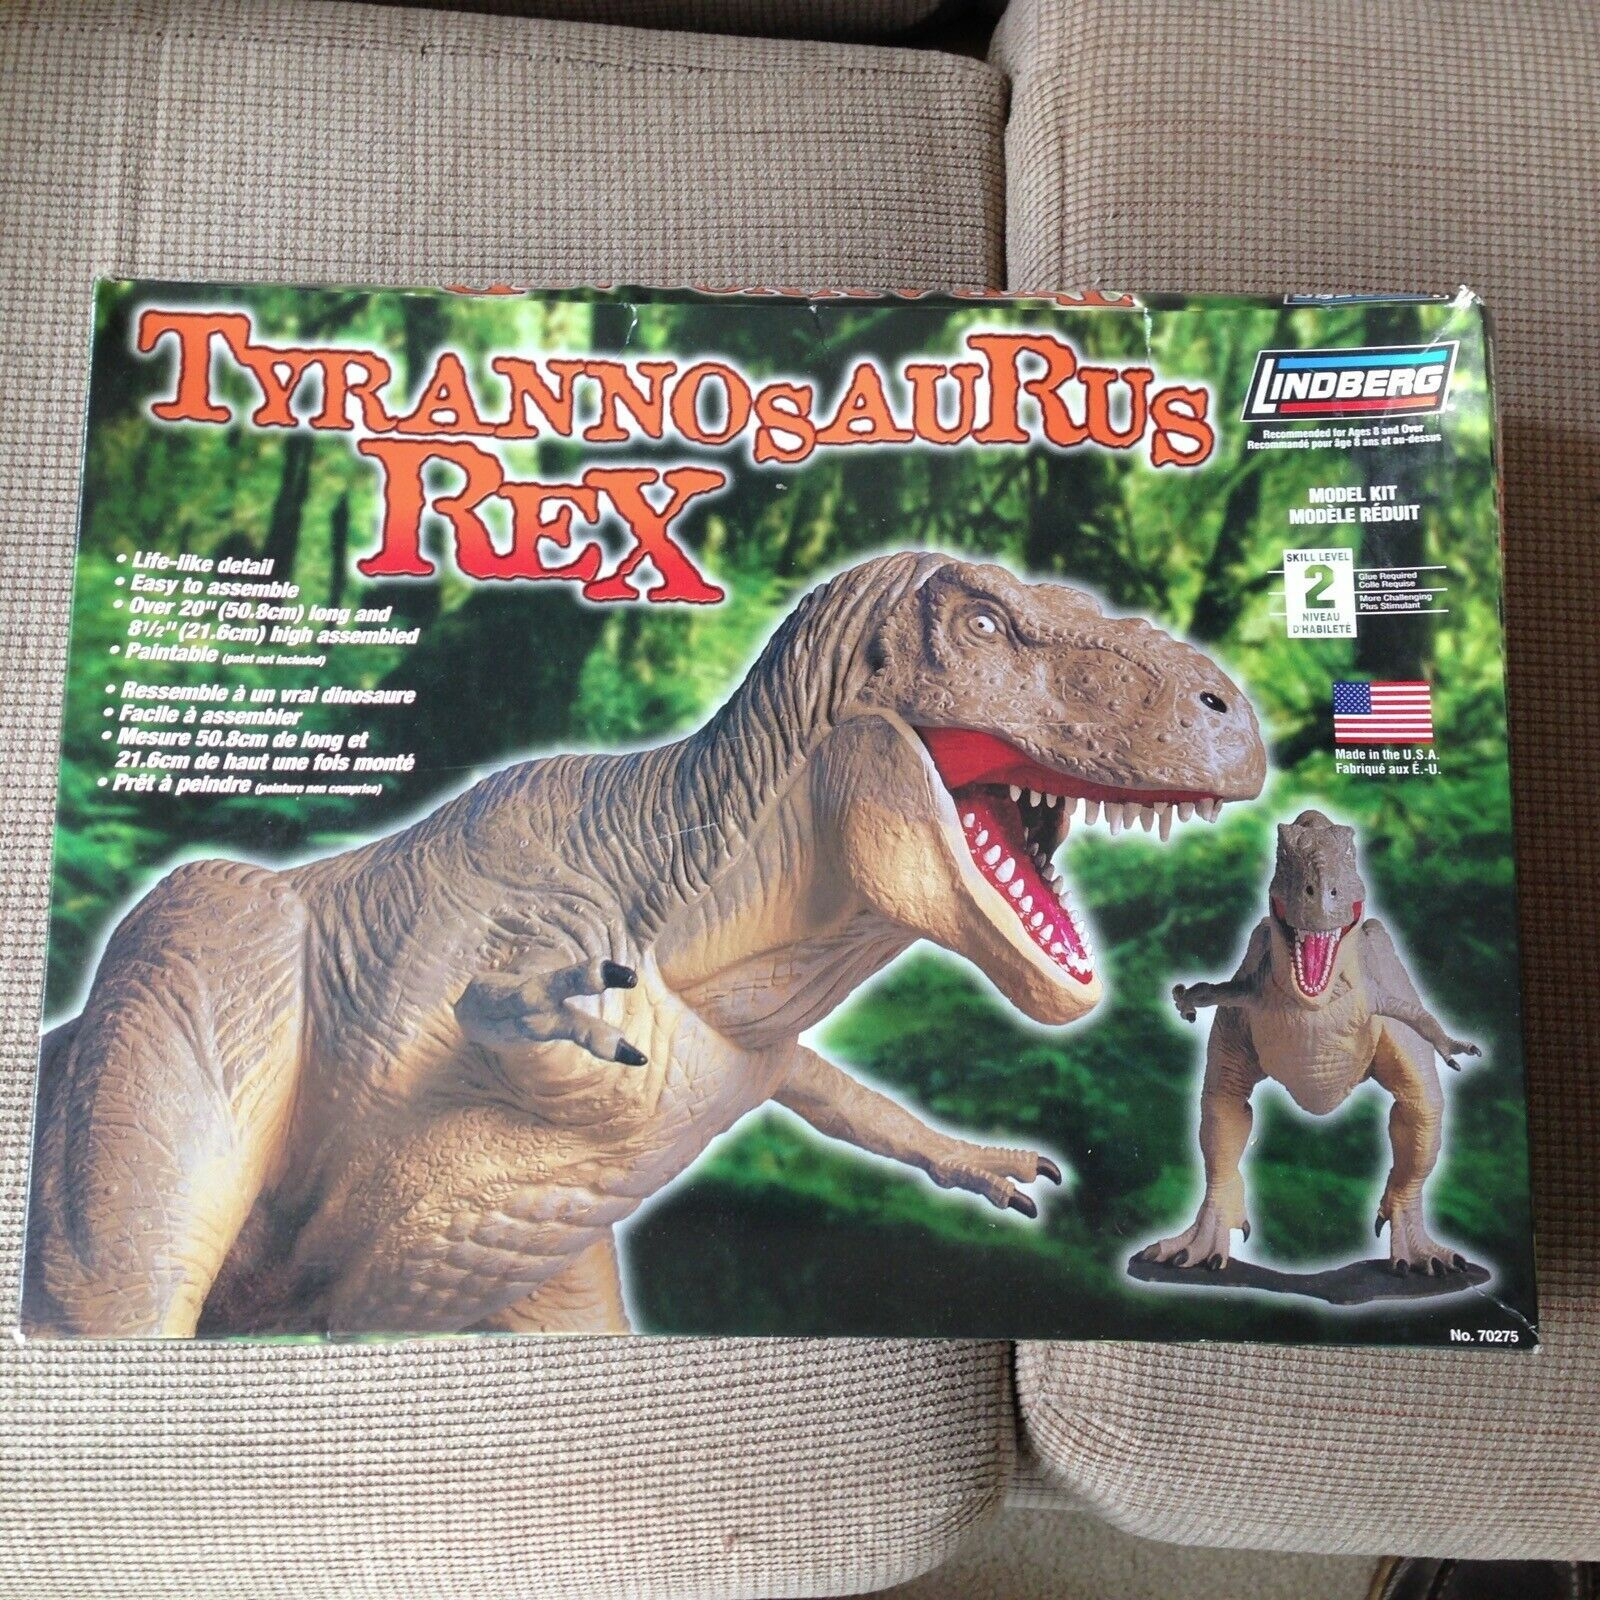 Primary image for T-Rex Tyrannasaurus Rex Lindberg Model Kit - Level 2 No. 70275 Unopened package